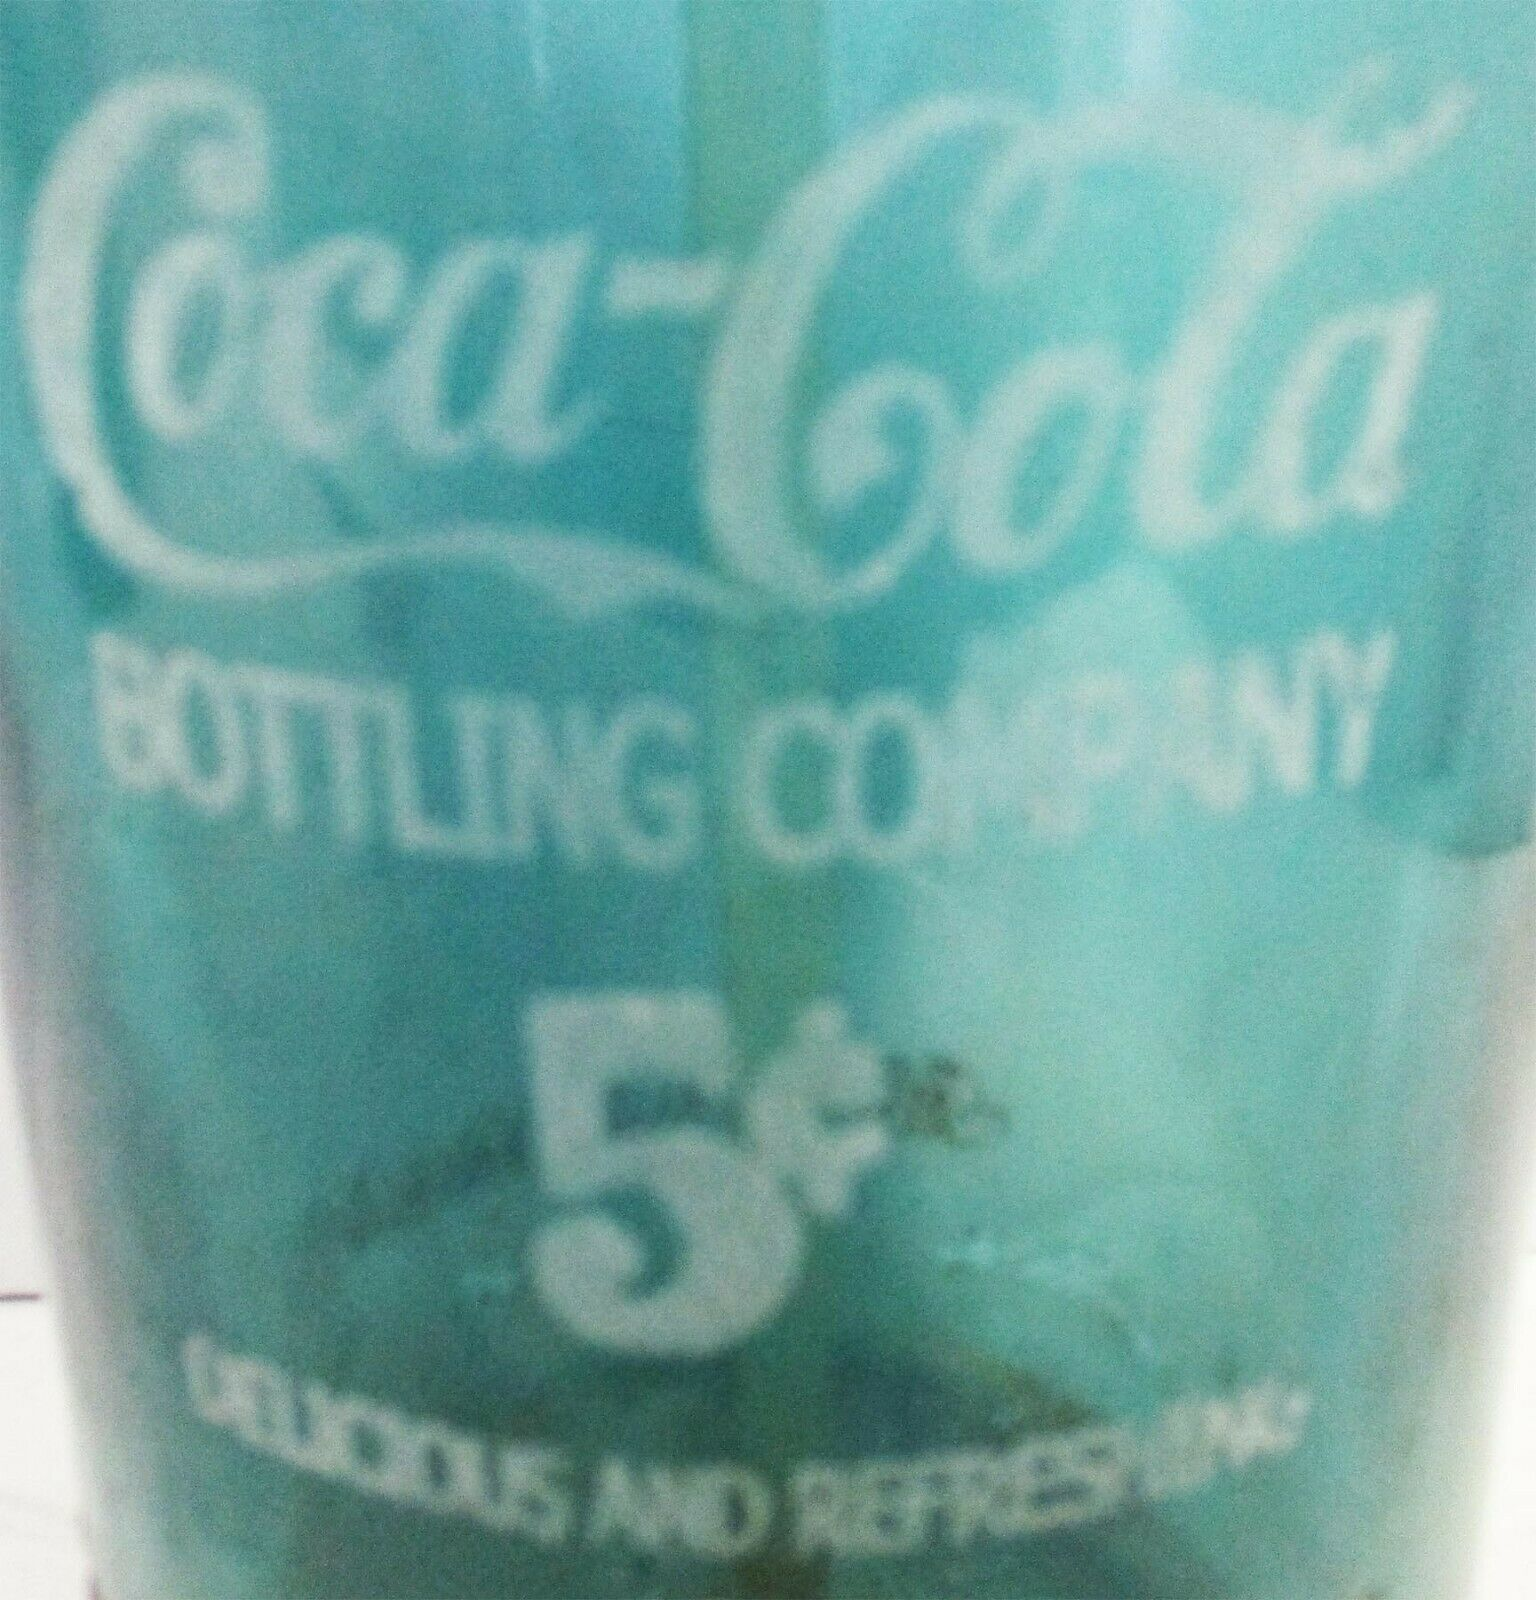 Blue/Green Seltzer Bottle Etched Coca-Cola Bottling Glass Circa 1940's image 2